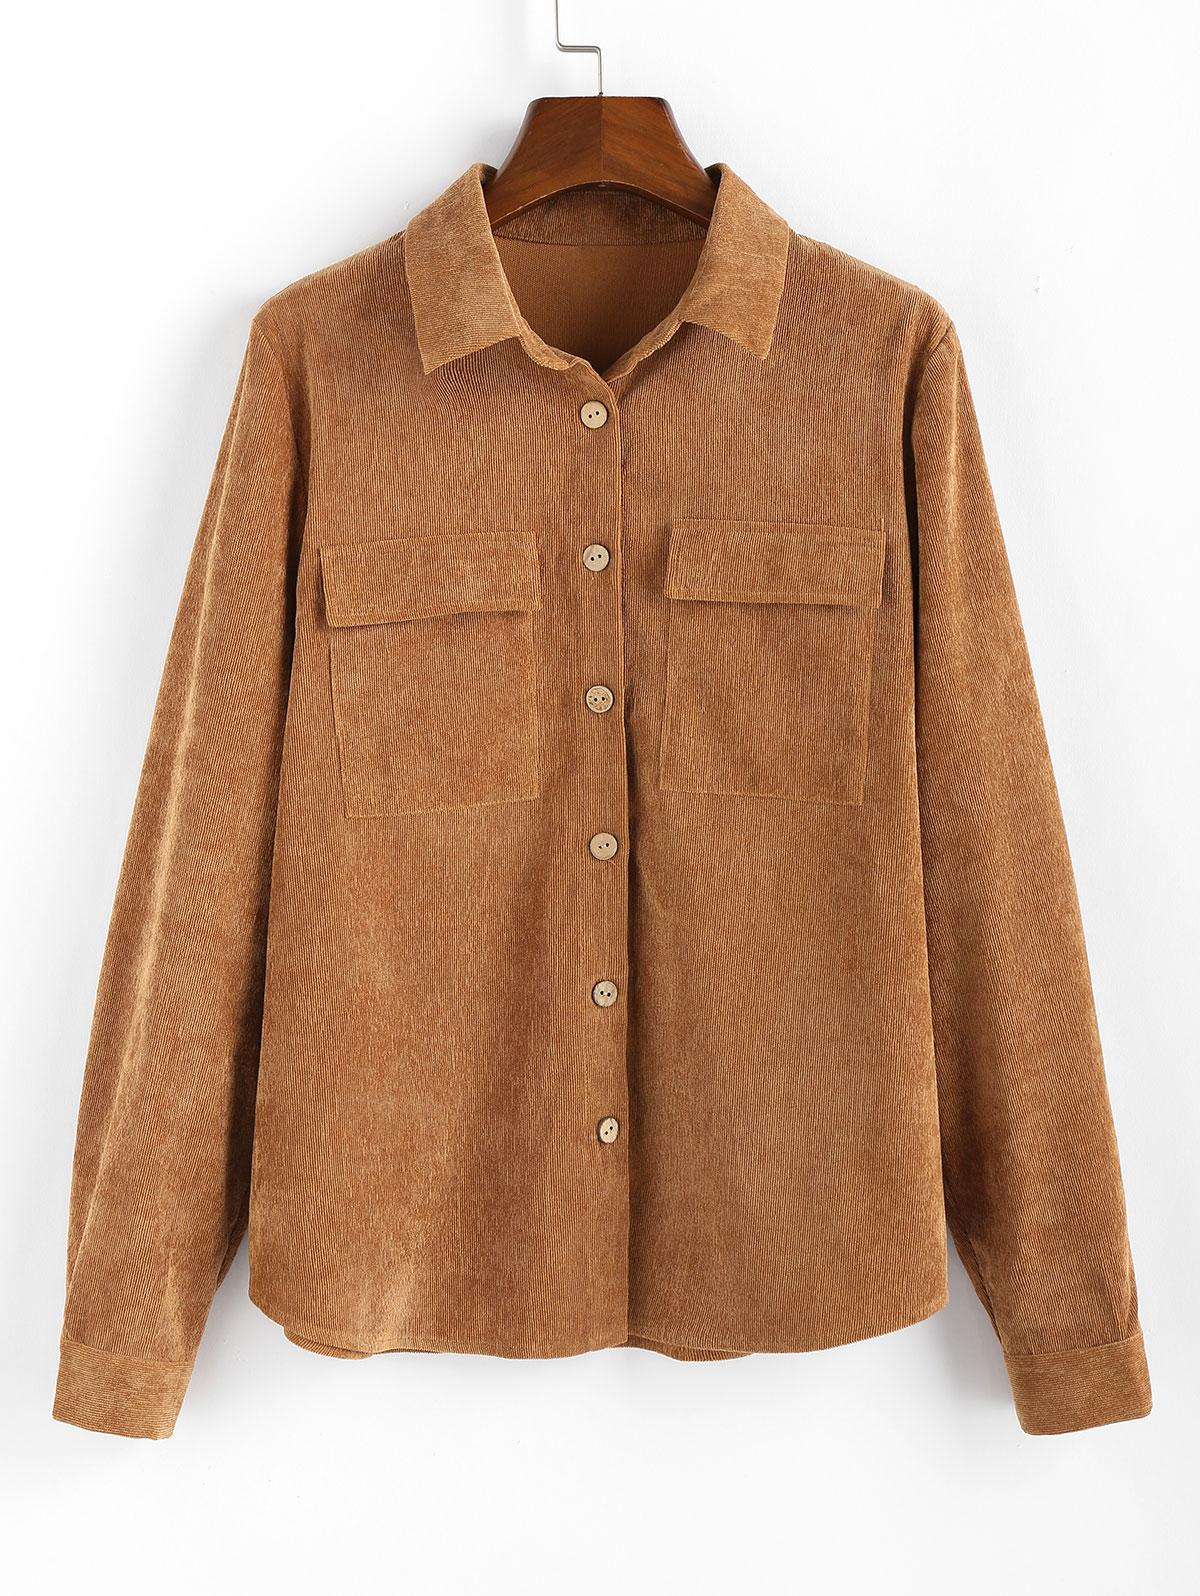 ZAFUL Button Up Pockets Corduroy Shirt фото